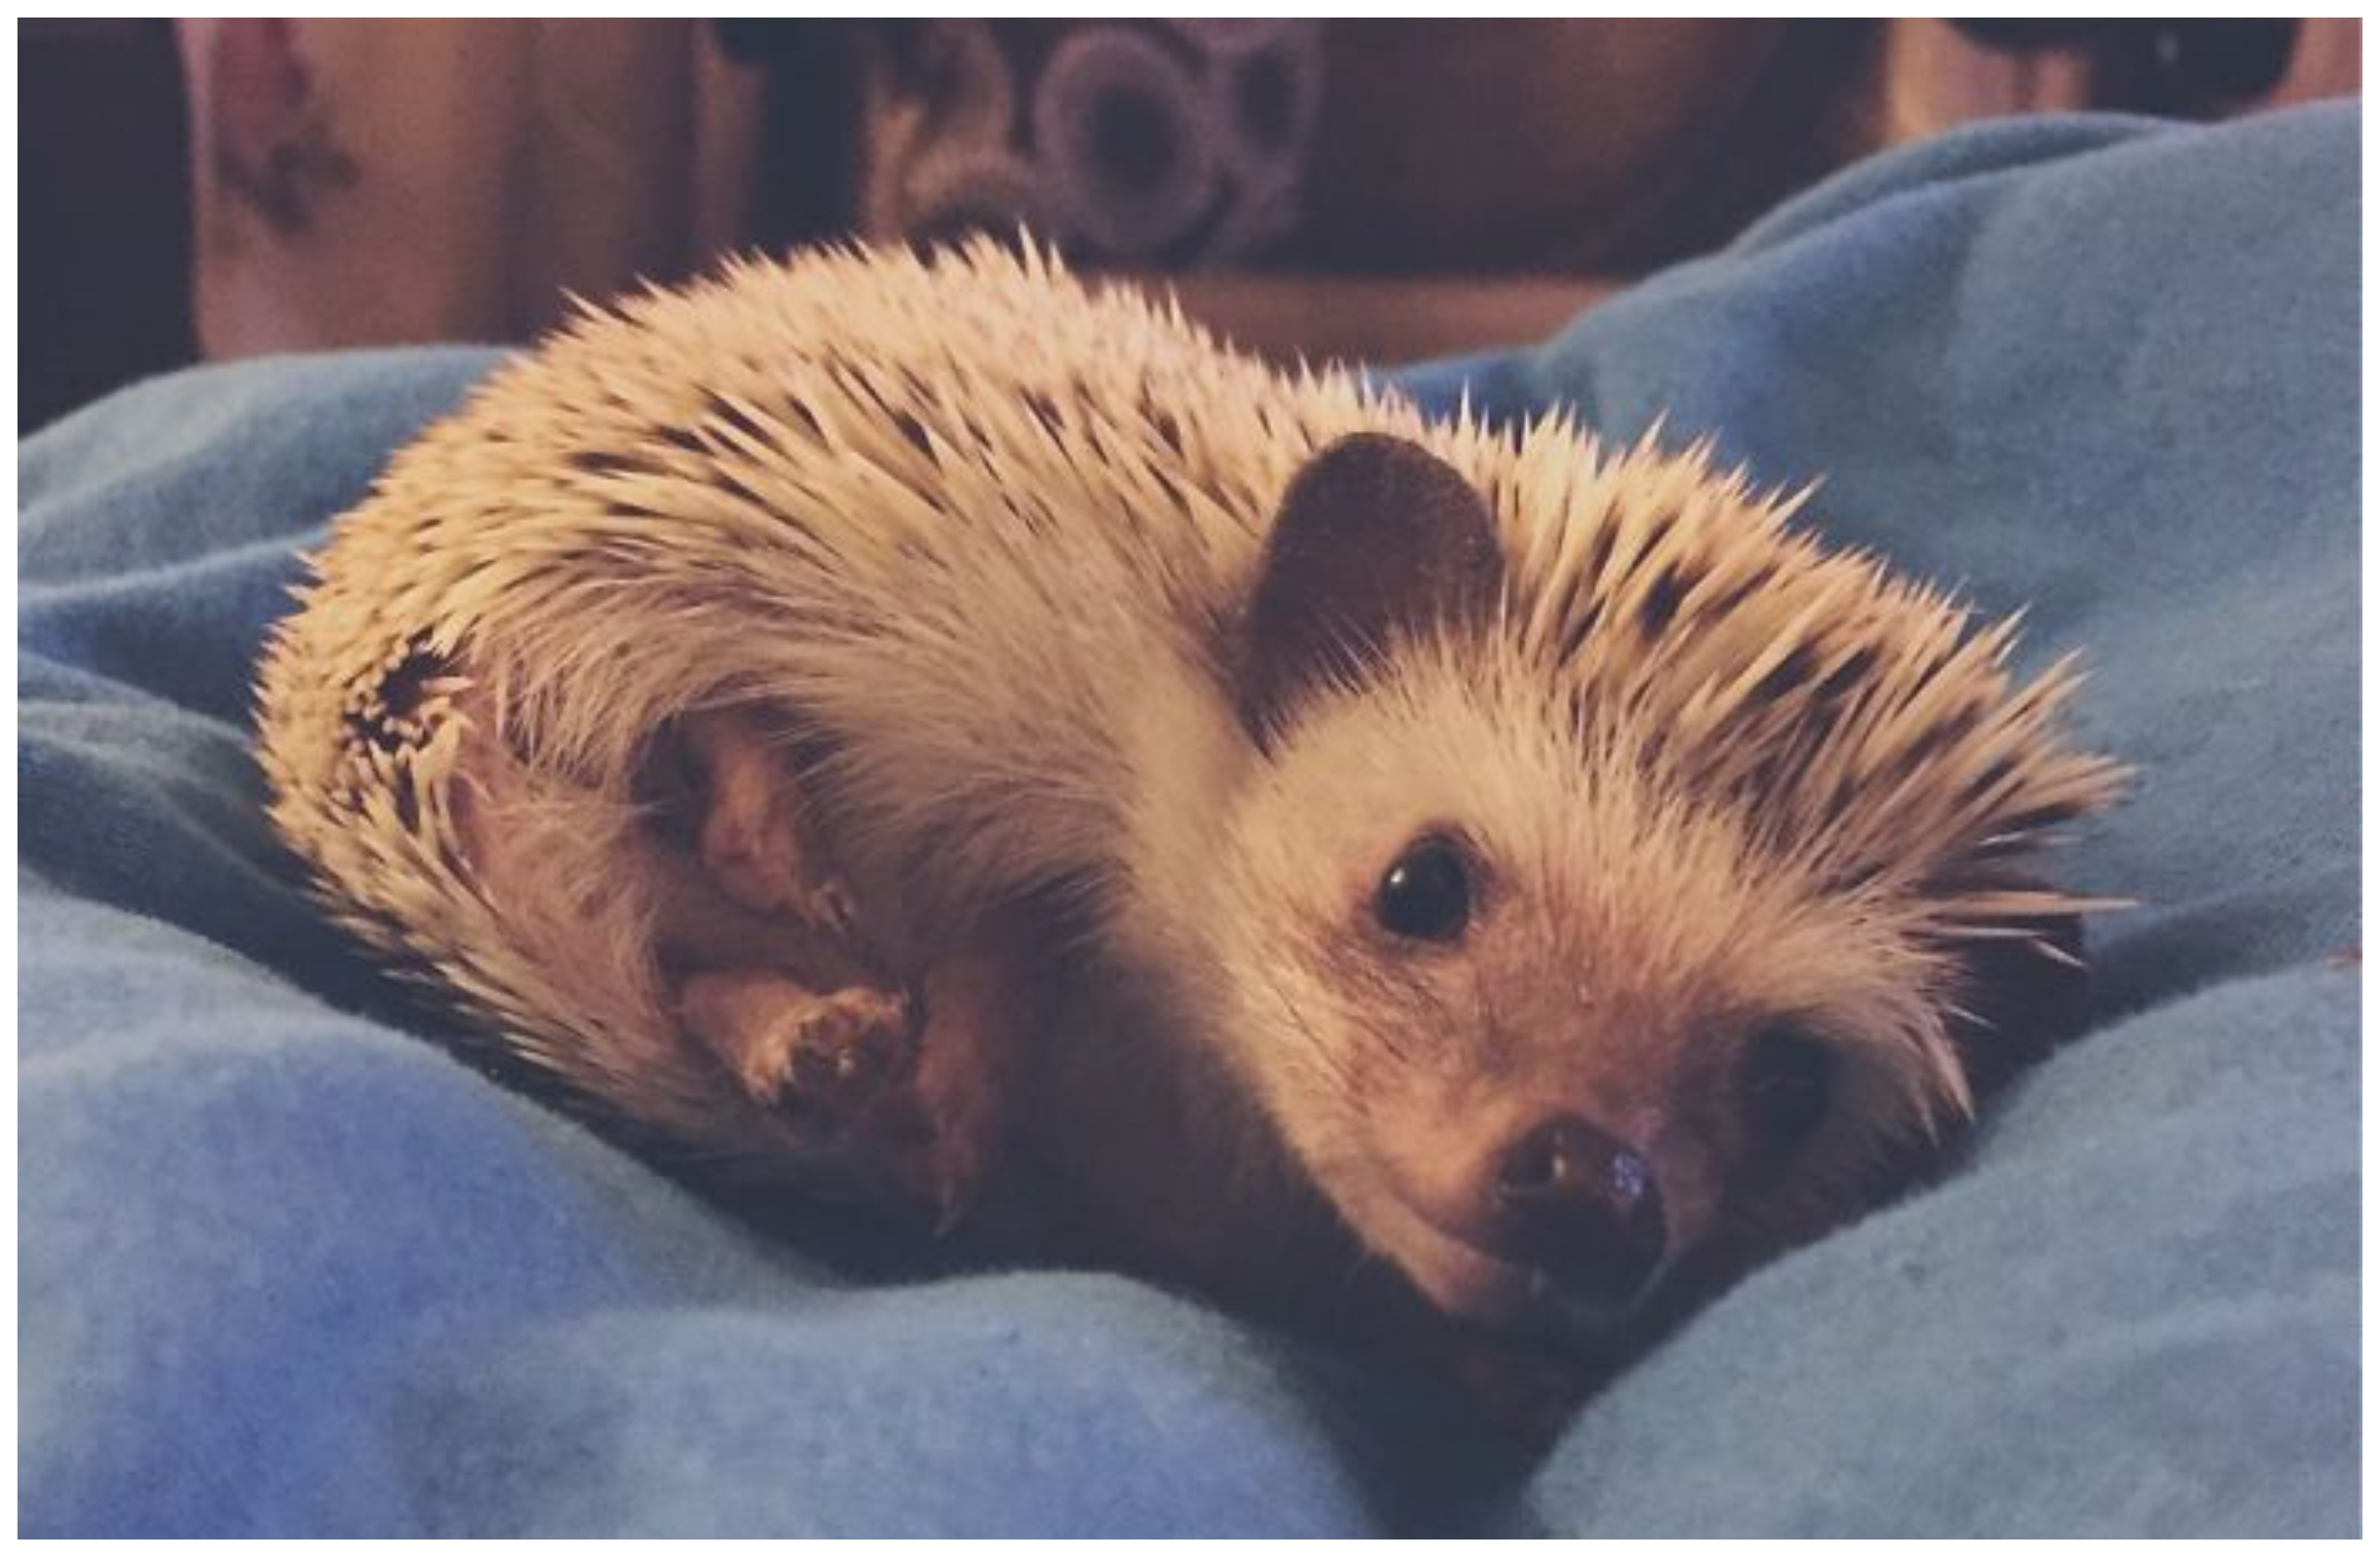 15 Of The Most Adorable Hedgehog Photos You Have Ever Seen